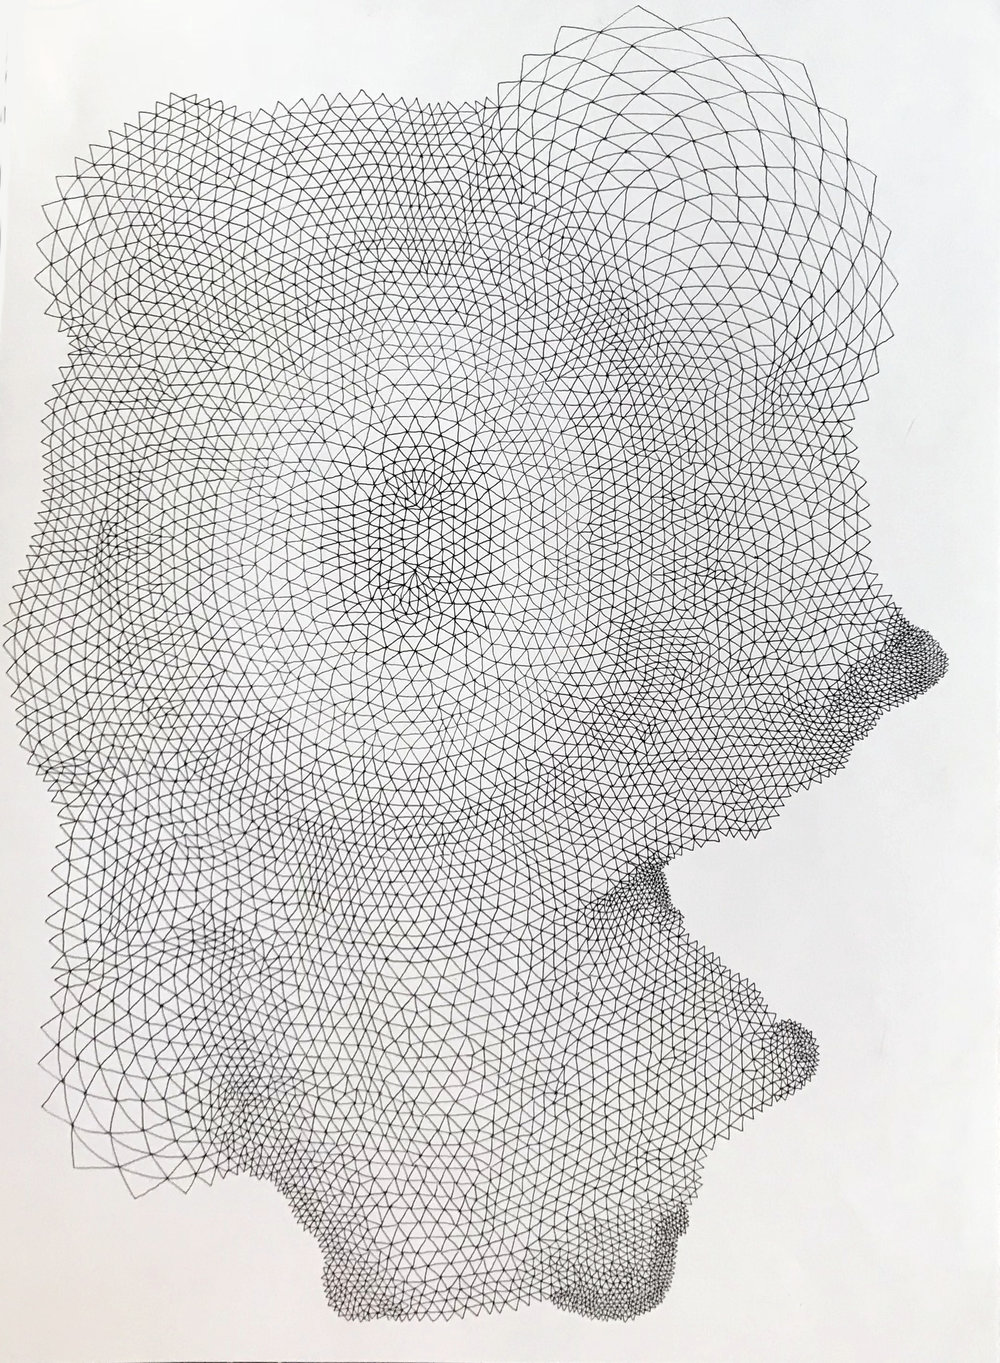 Fragogna_Skin_1_Ink on Paper_16 x 12 inches.jpg